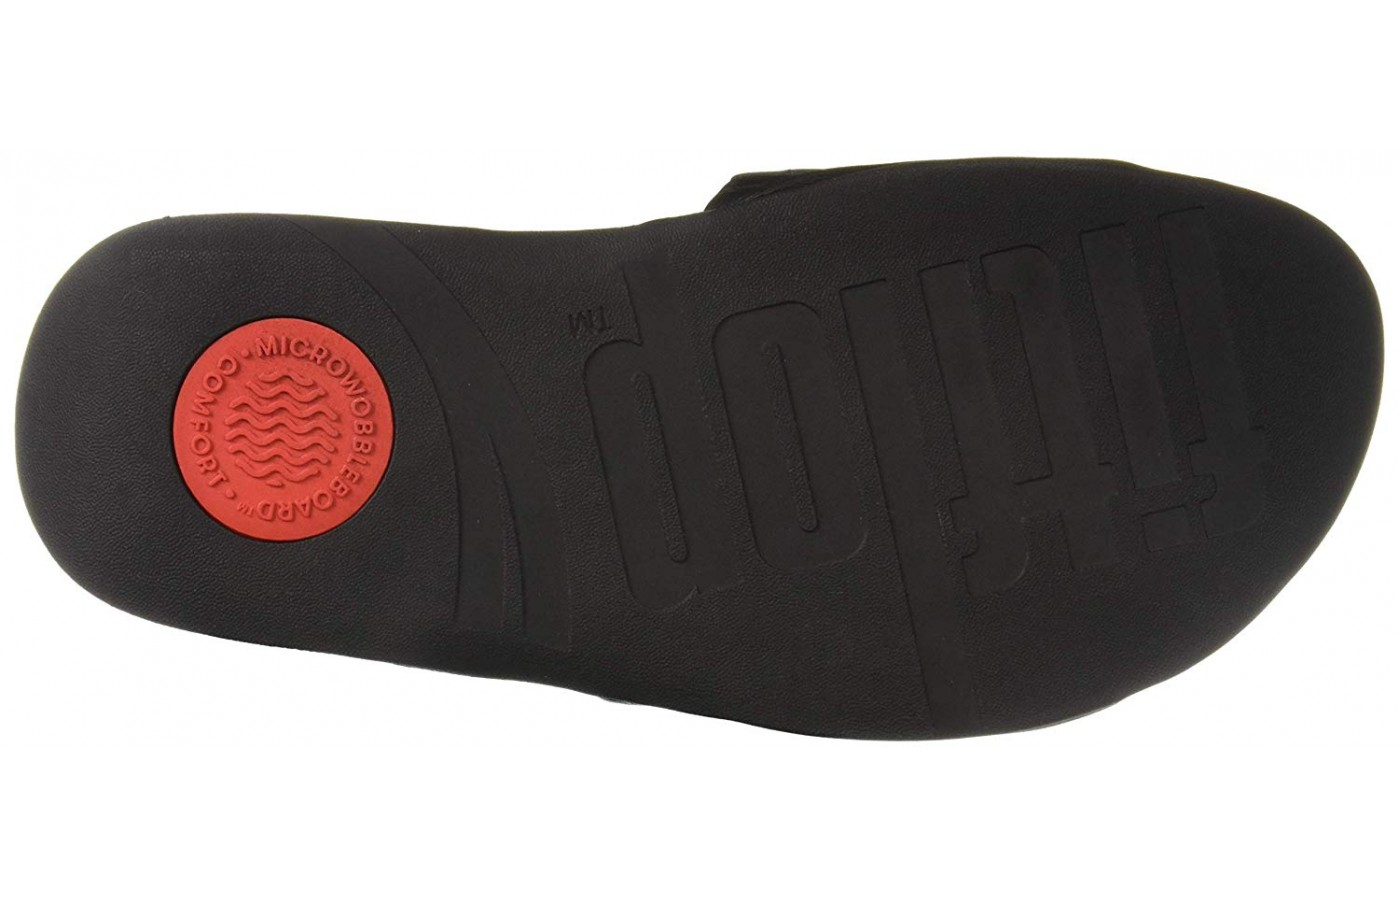 Traction pods and the rubber outsole on this FitFlop.